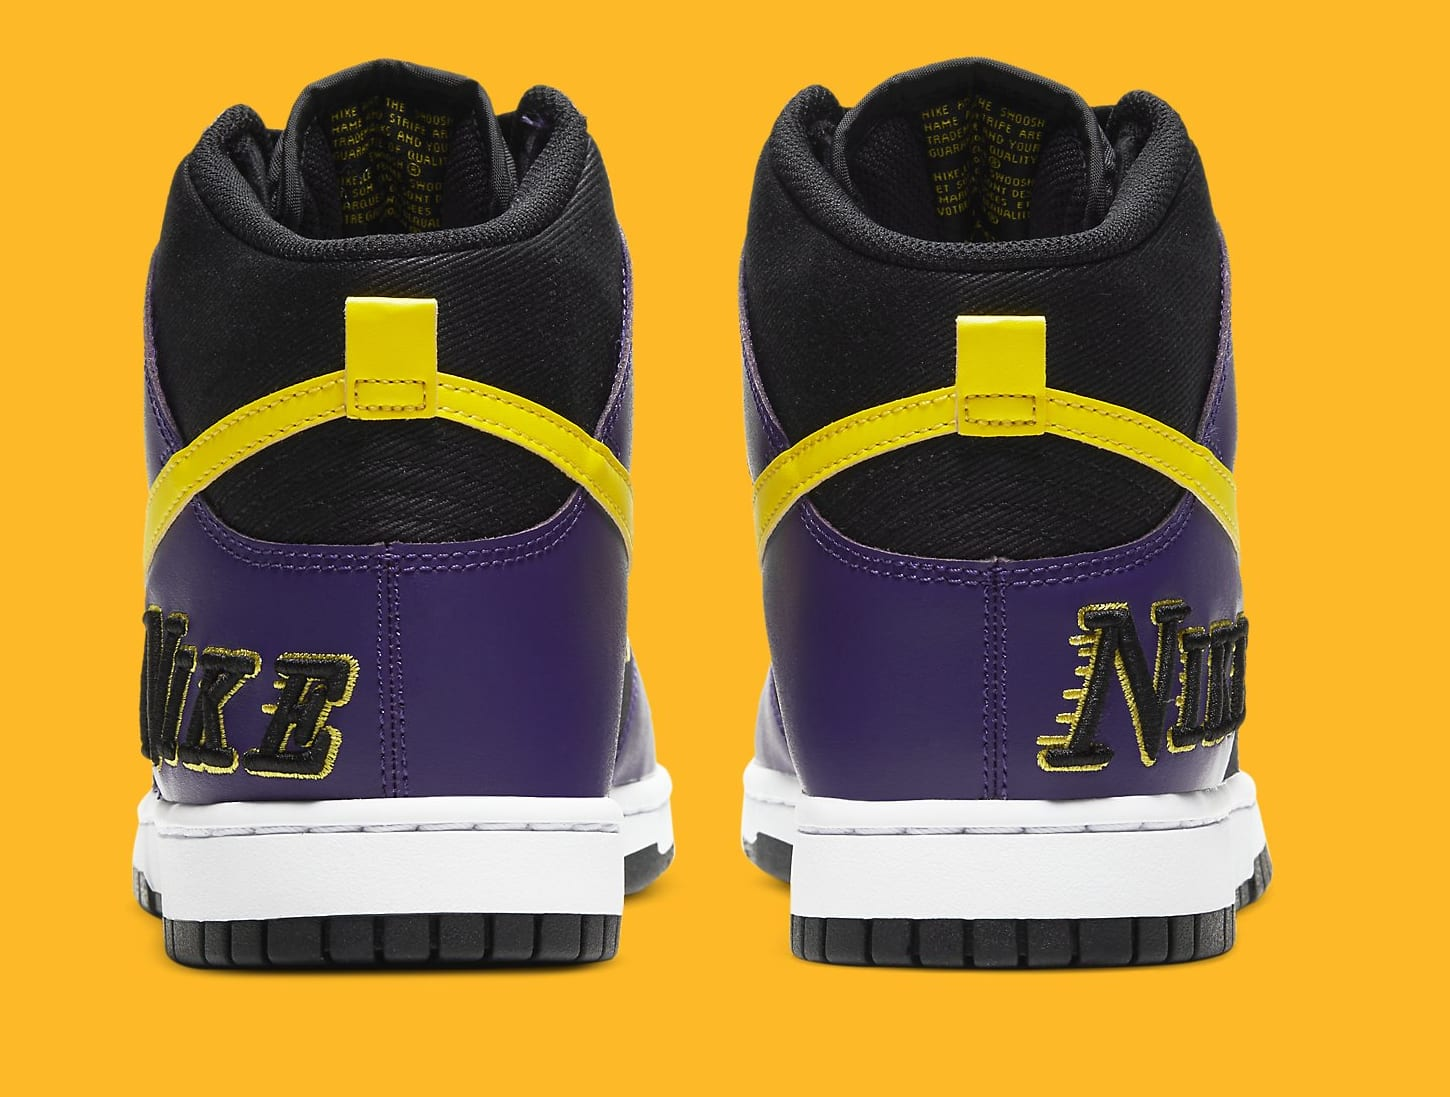 Nike Dunk High PRM EMB 'Lakers' DH0642-001 Heel